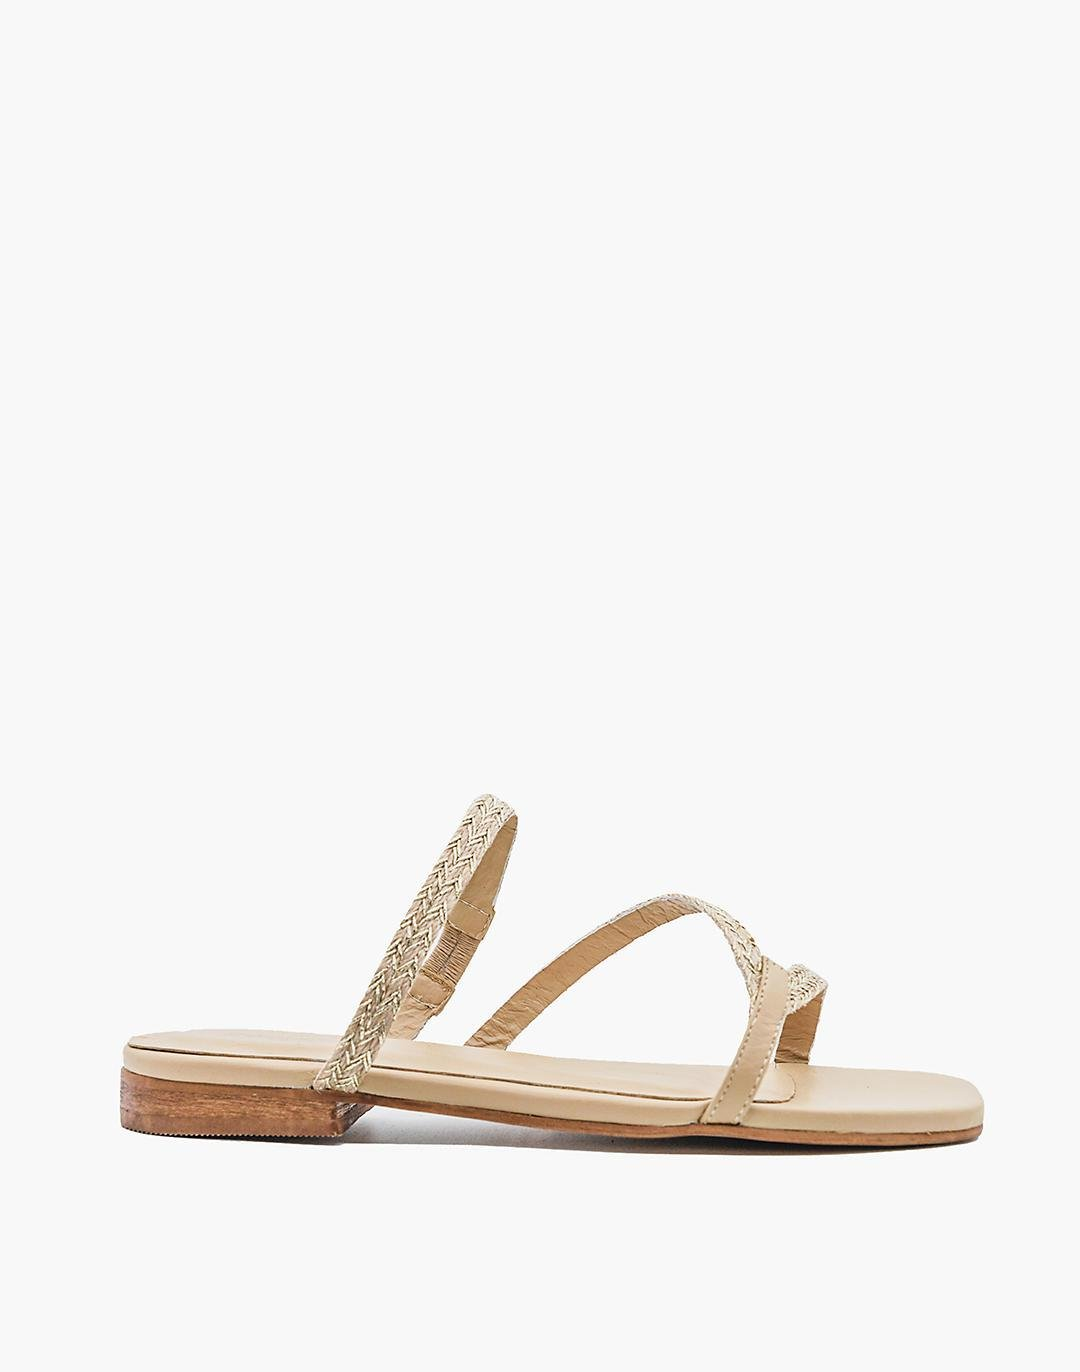 KAANAS Nevis Barely-There Metallic Yute Sandals